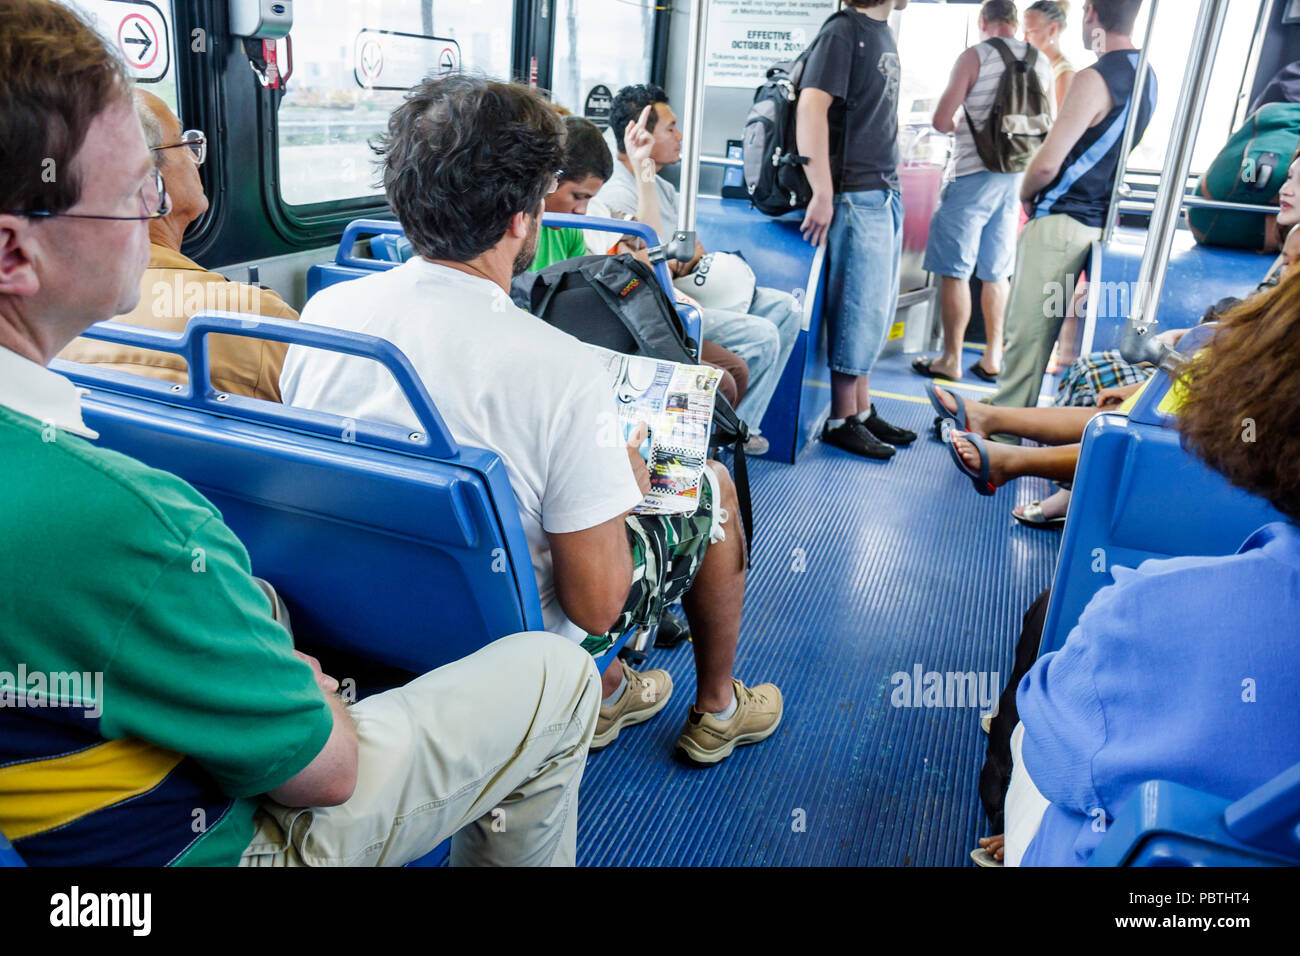 10614574be7 Miami Beach Florida Metrobus bus public transportation passengers seats  mass transit standing sitting man men aisle